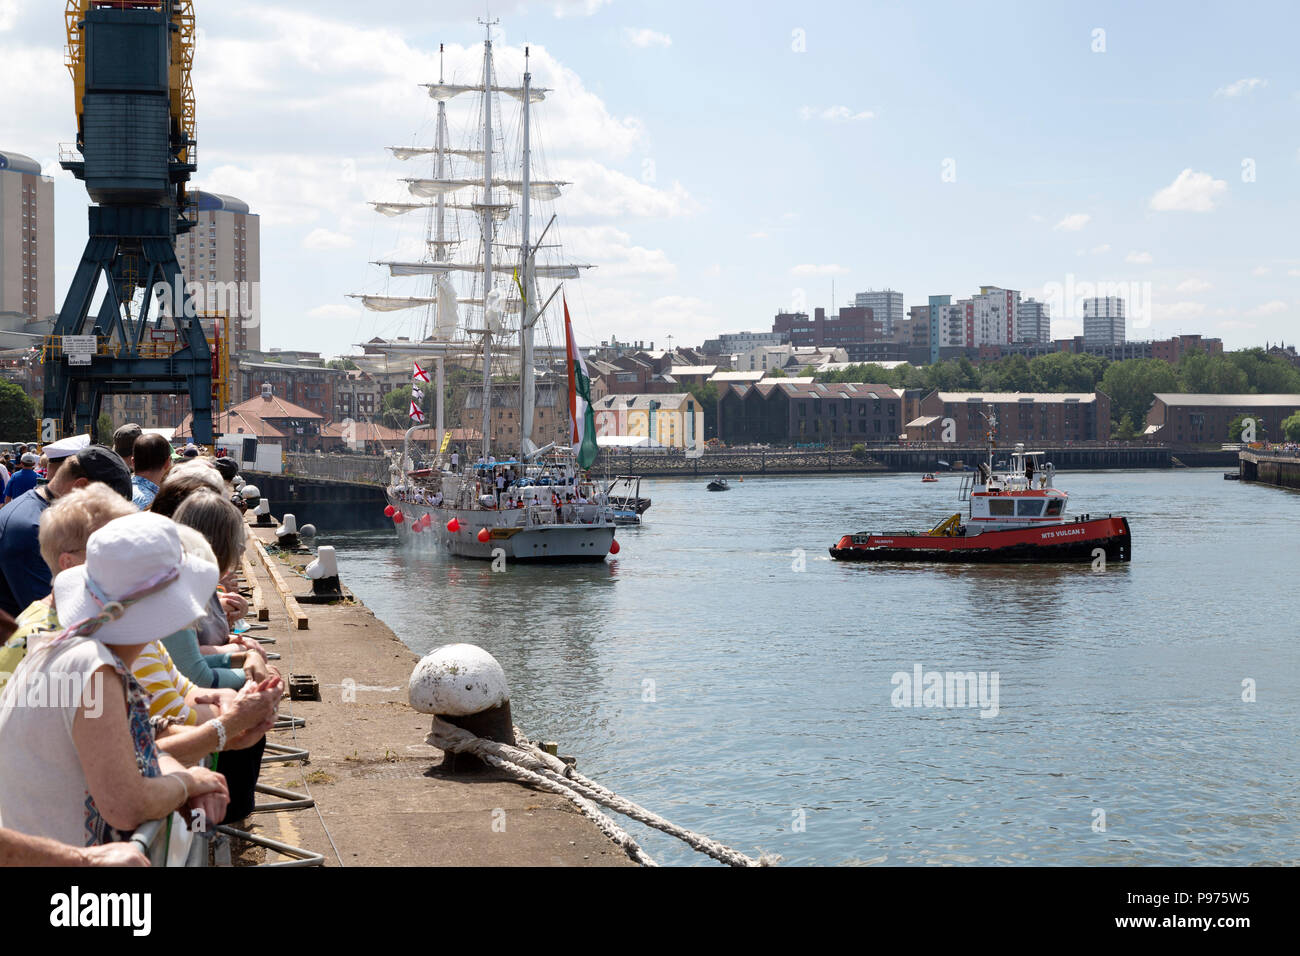 Sunderland, UK. 14th July 2018. The Tarangini, an Indian ship, departing the Port of Sunderland at the beginning of the first leg of the 2018 Tall Ships Race, to Ebsjerg in Denmark. More than 50 tall ships were docked in the Port of Sunderland, in north-east England, from 11 to 14 July 2018. Credit: Stuart Forster/Alamy Live News - Stock Image